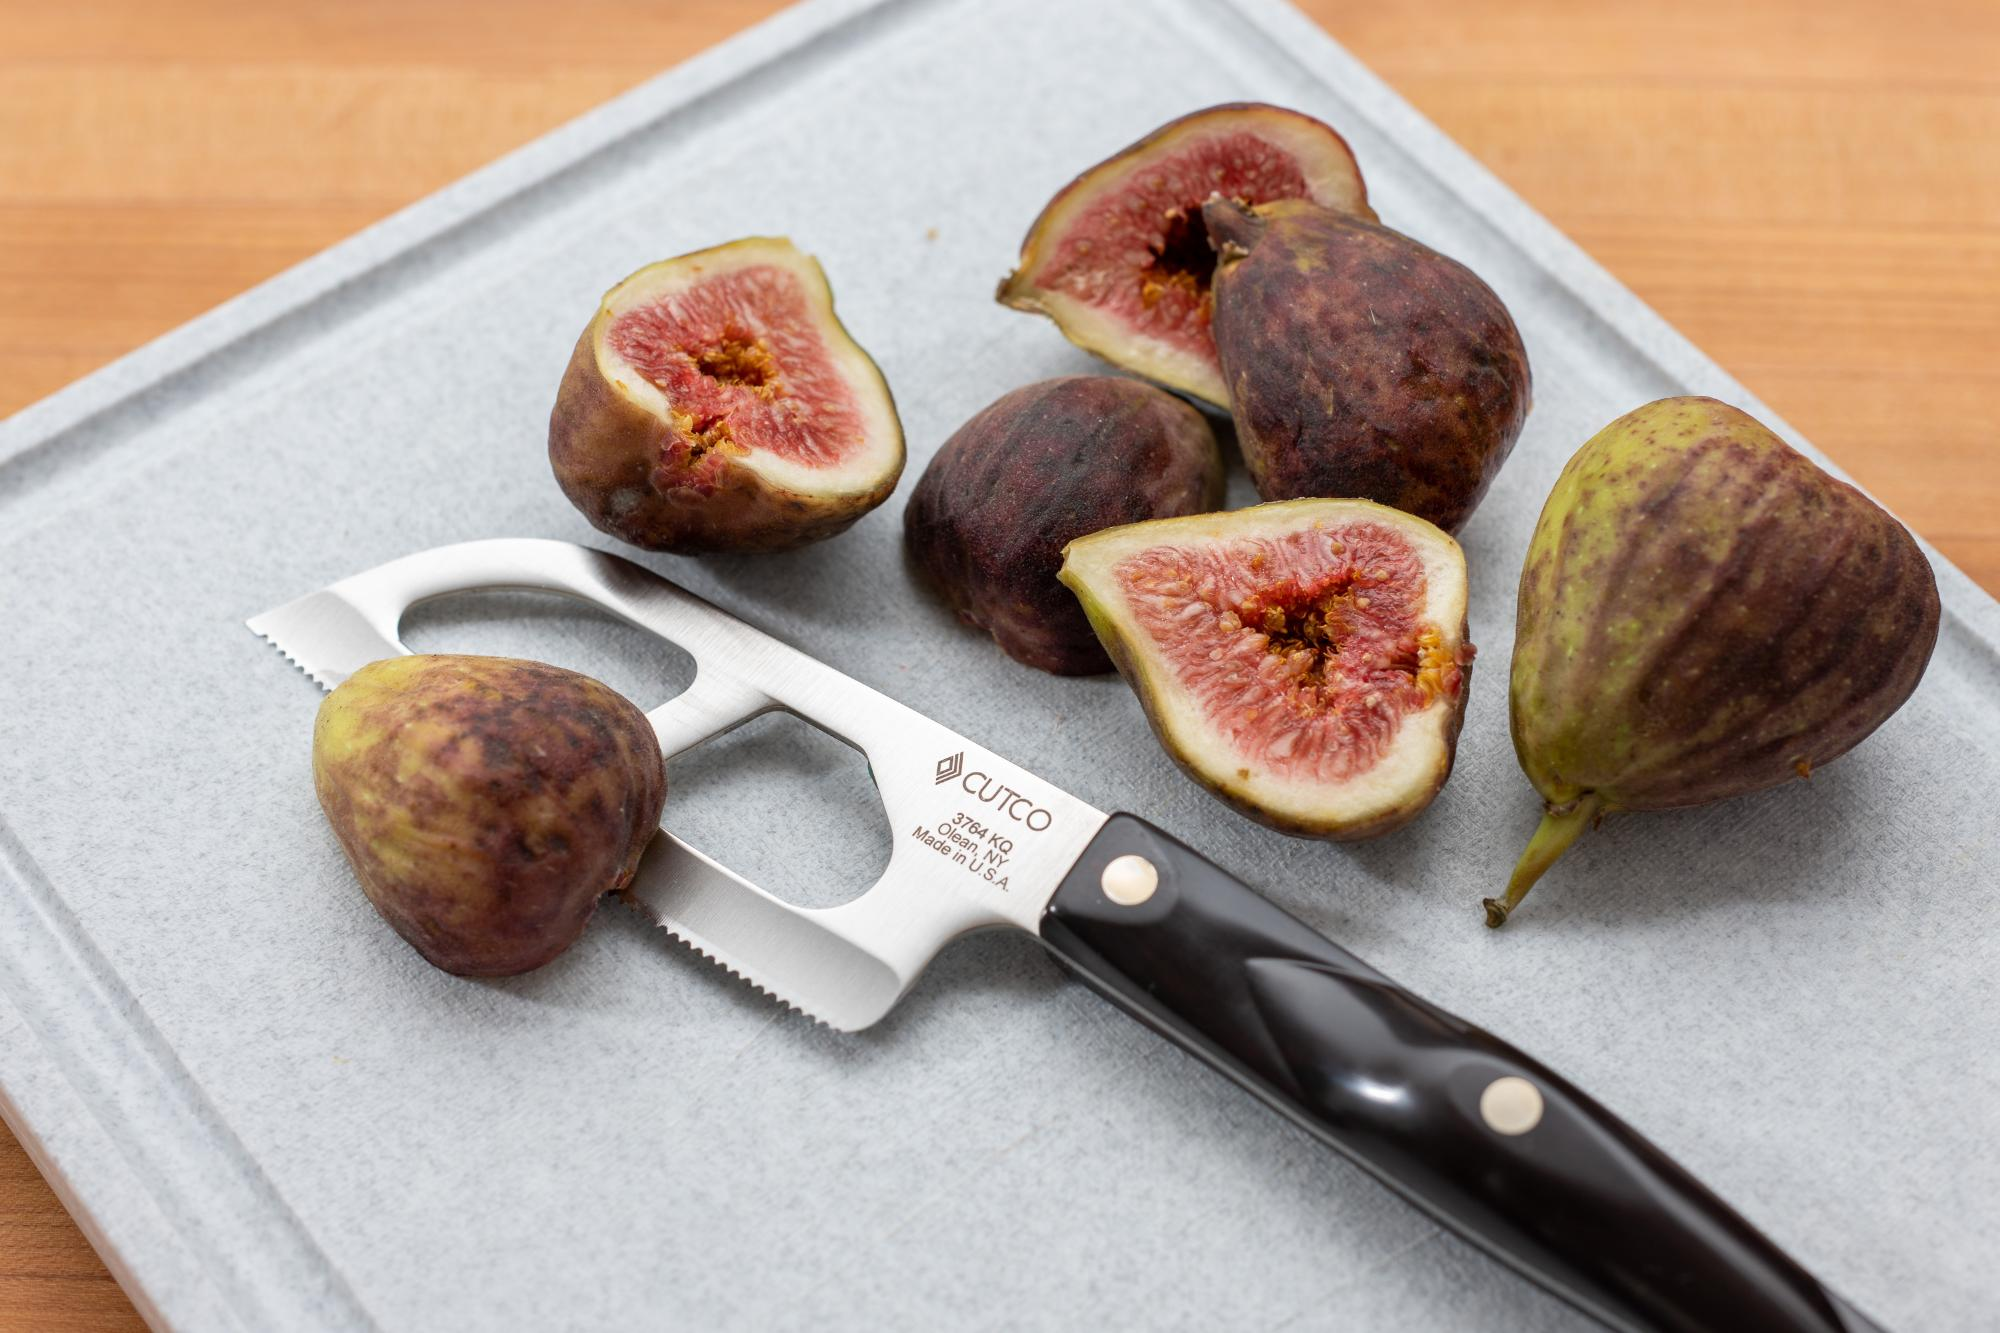 Prepping figs for the mezze platter.